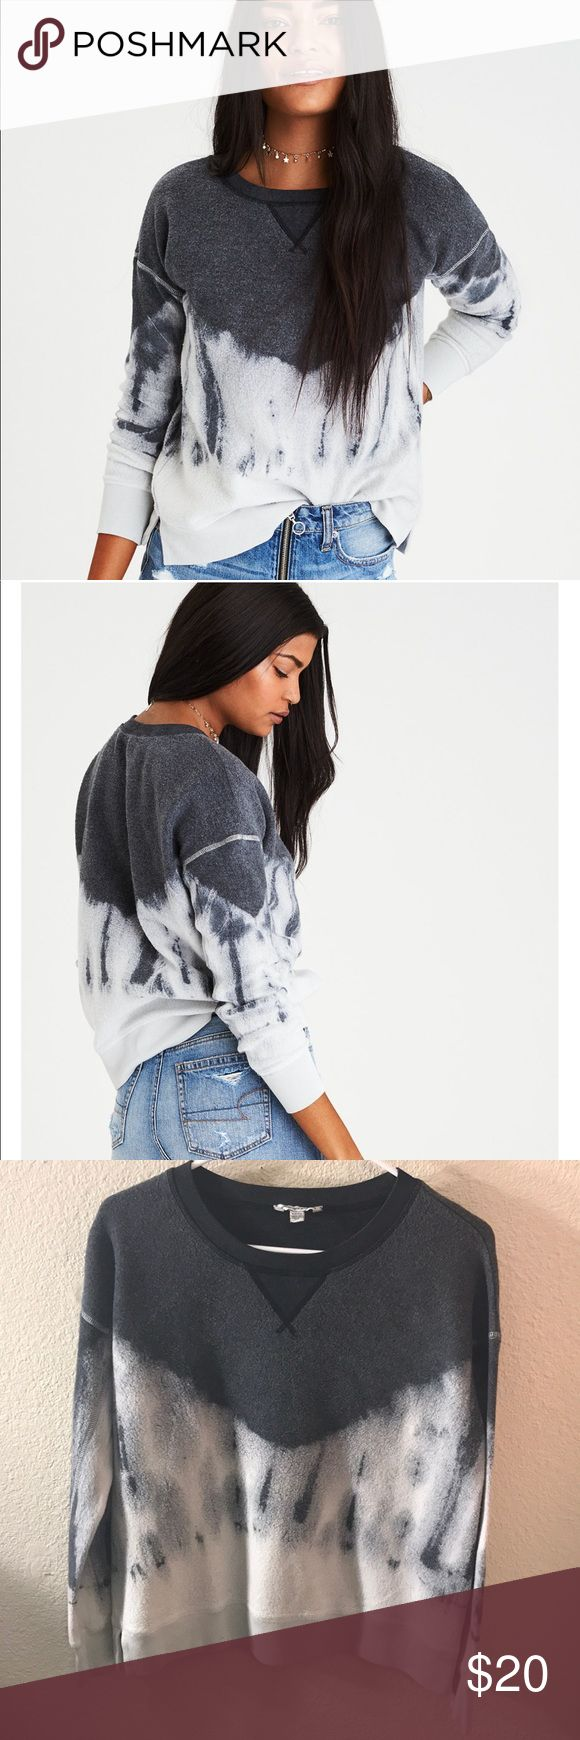 COZY INSIDE & OUT TIE-DYE SWEATSHIRT Very cute and has never been worn American Eagle Outfitters Tops Sweatshirts & Hoodies